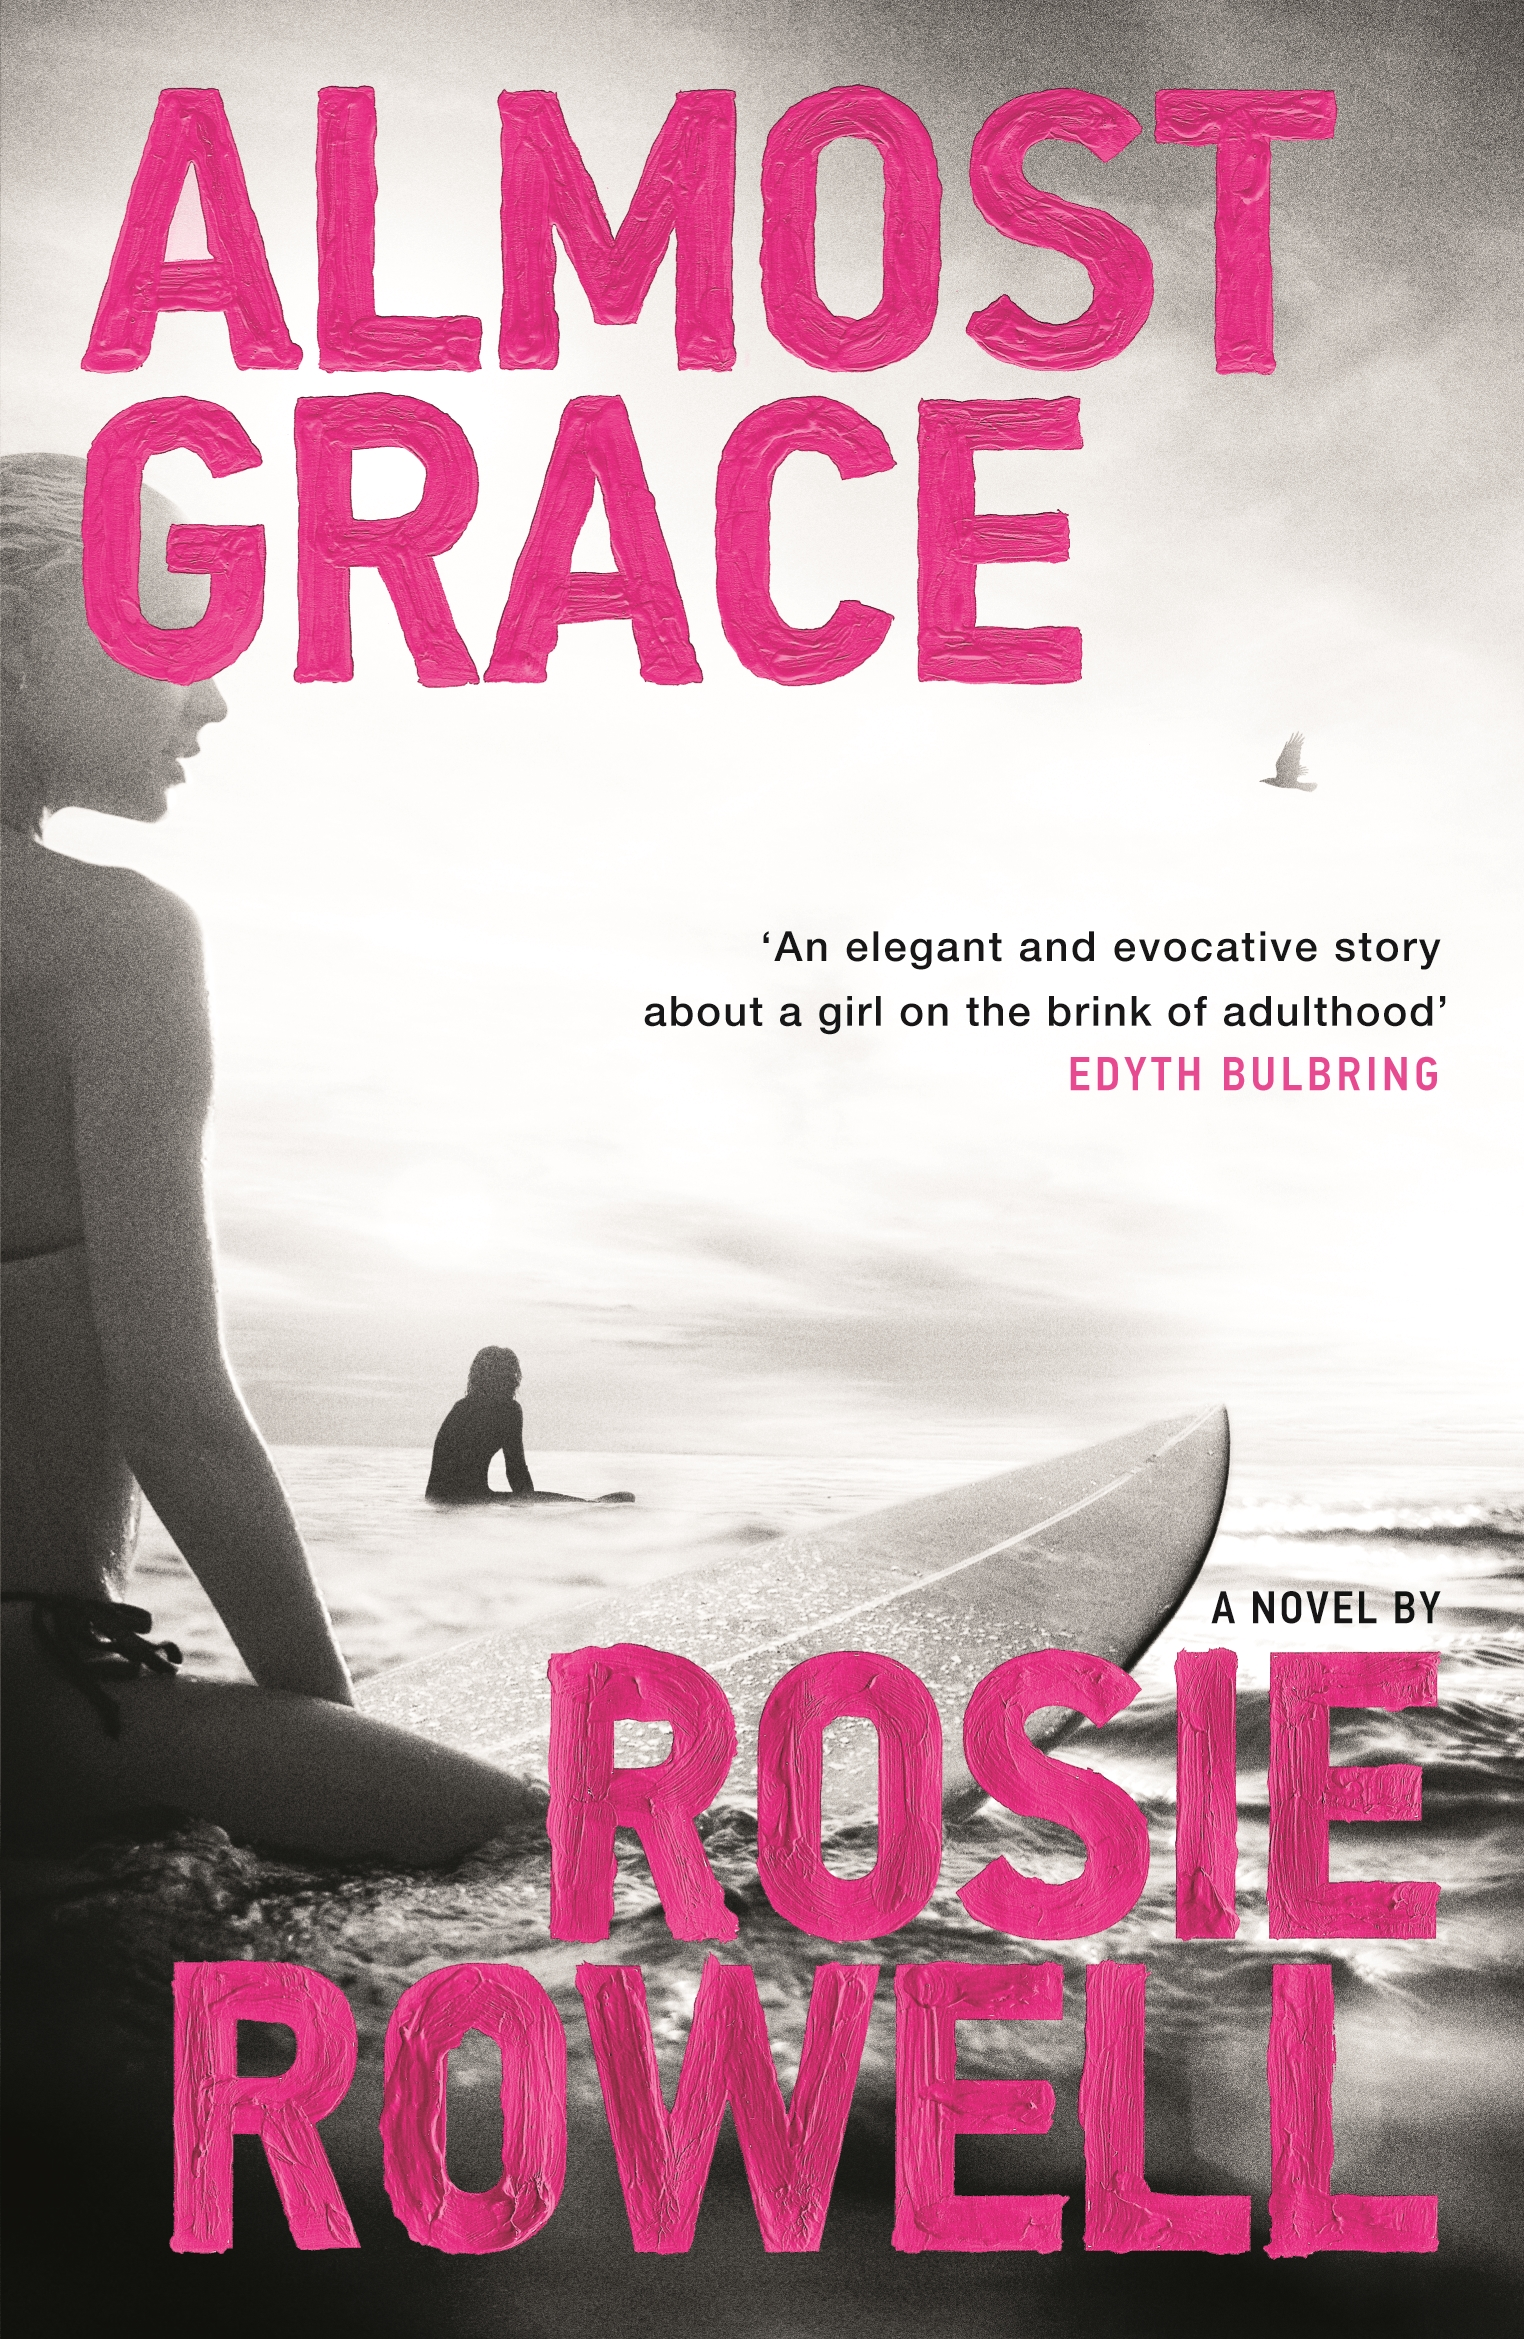 Almost Grace by Rosie Rowell